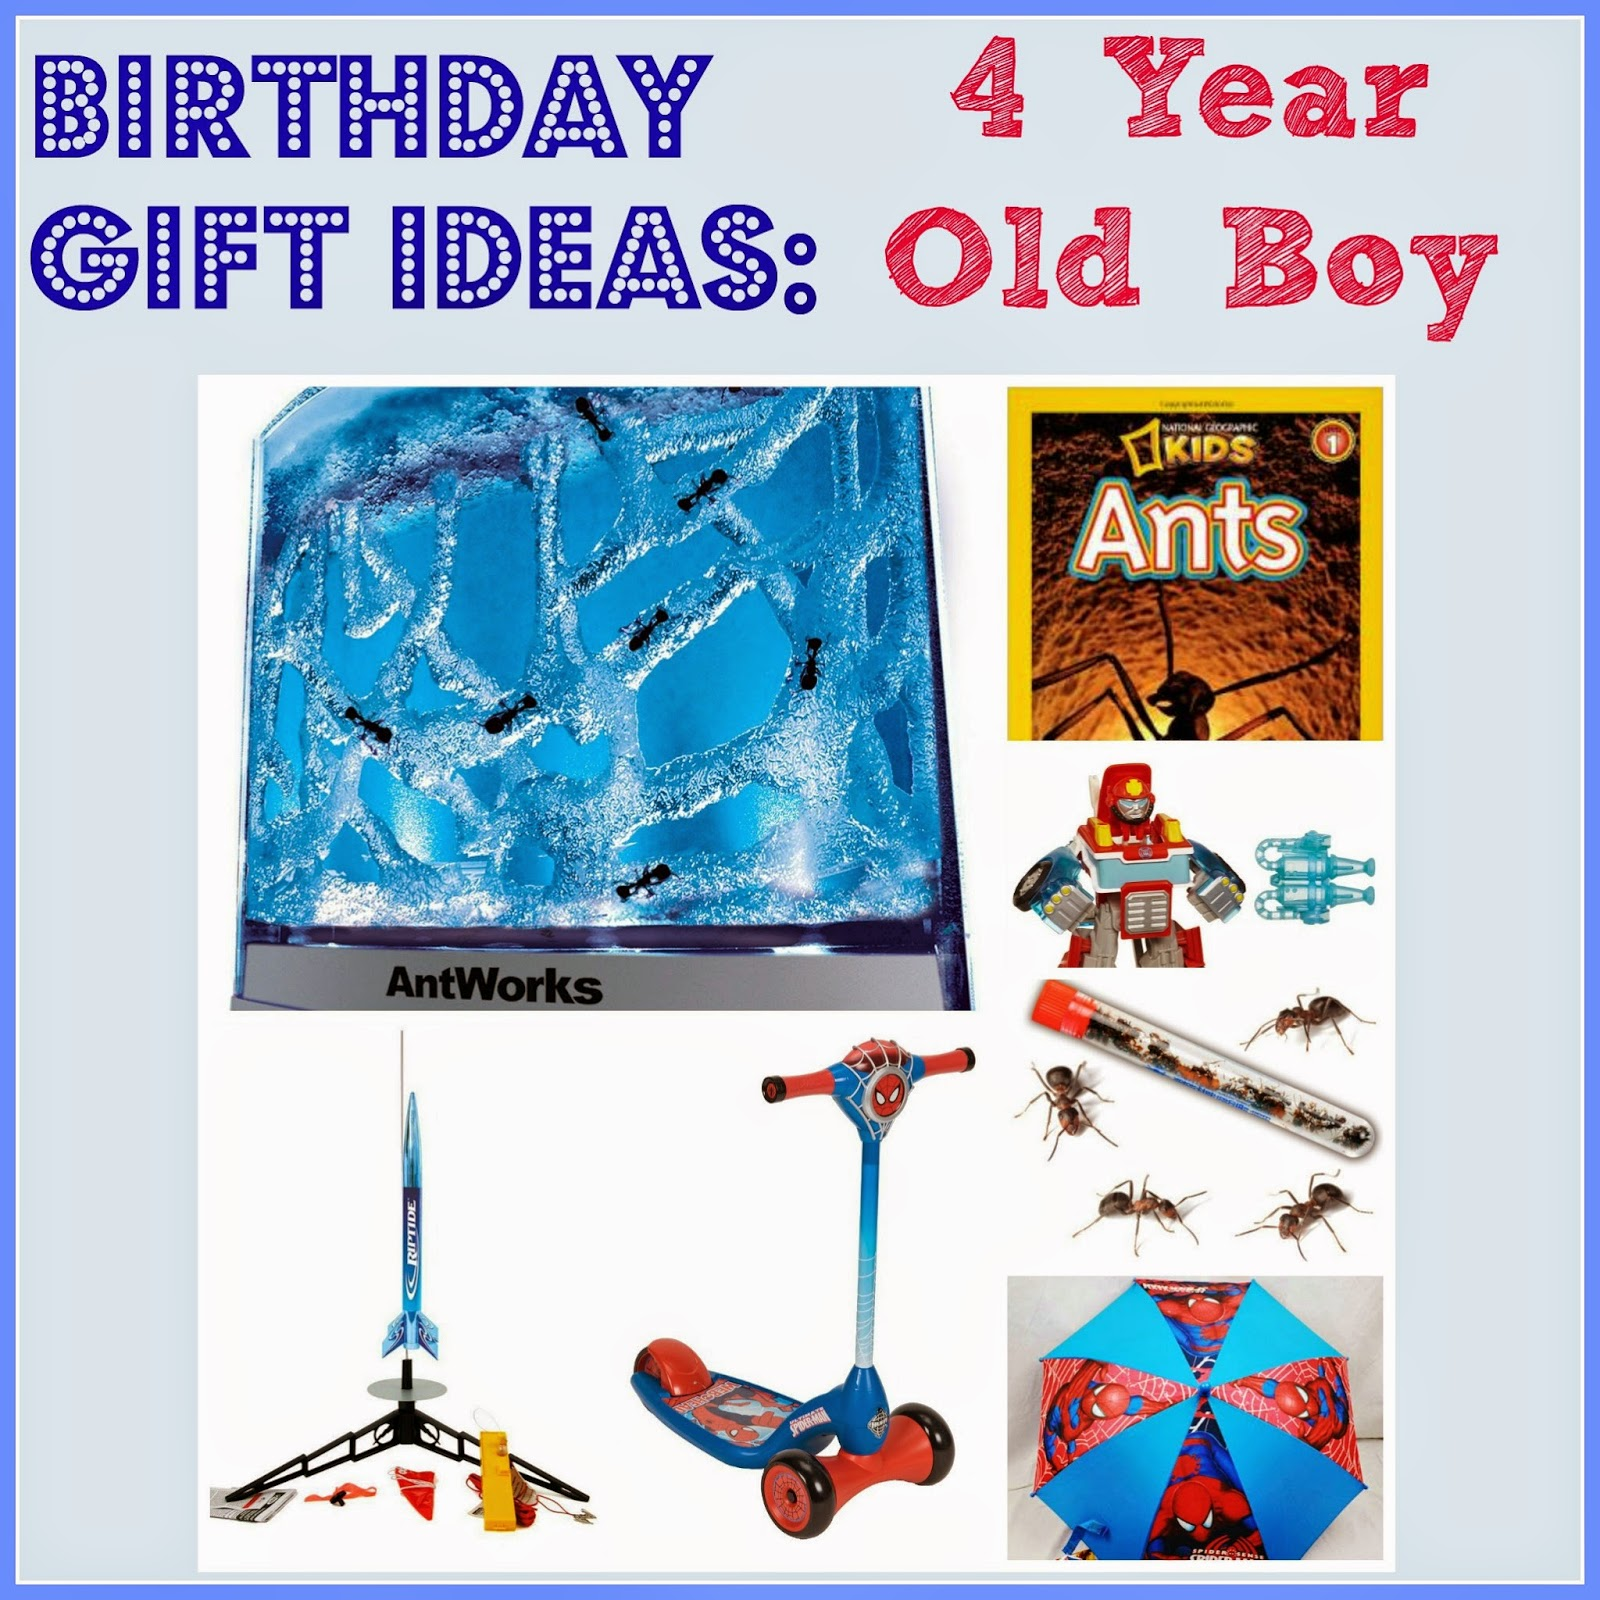 Birthday gift ideas for a 4 year old boy.  What to get a 4 year old boy for his birthday.  boy birthday ideas.